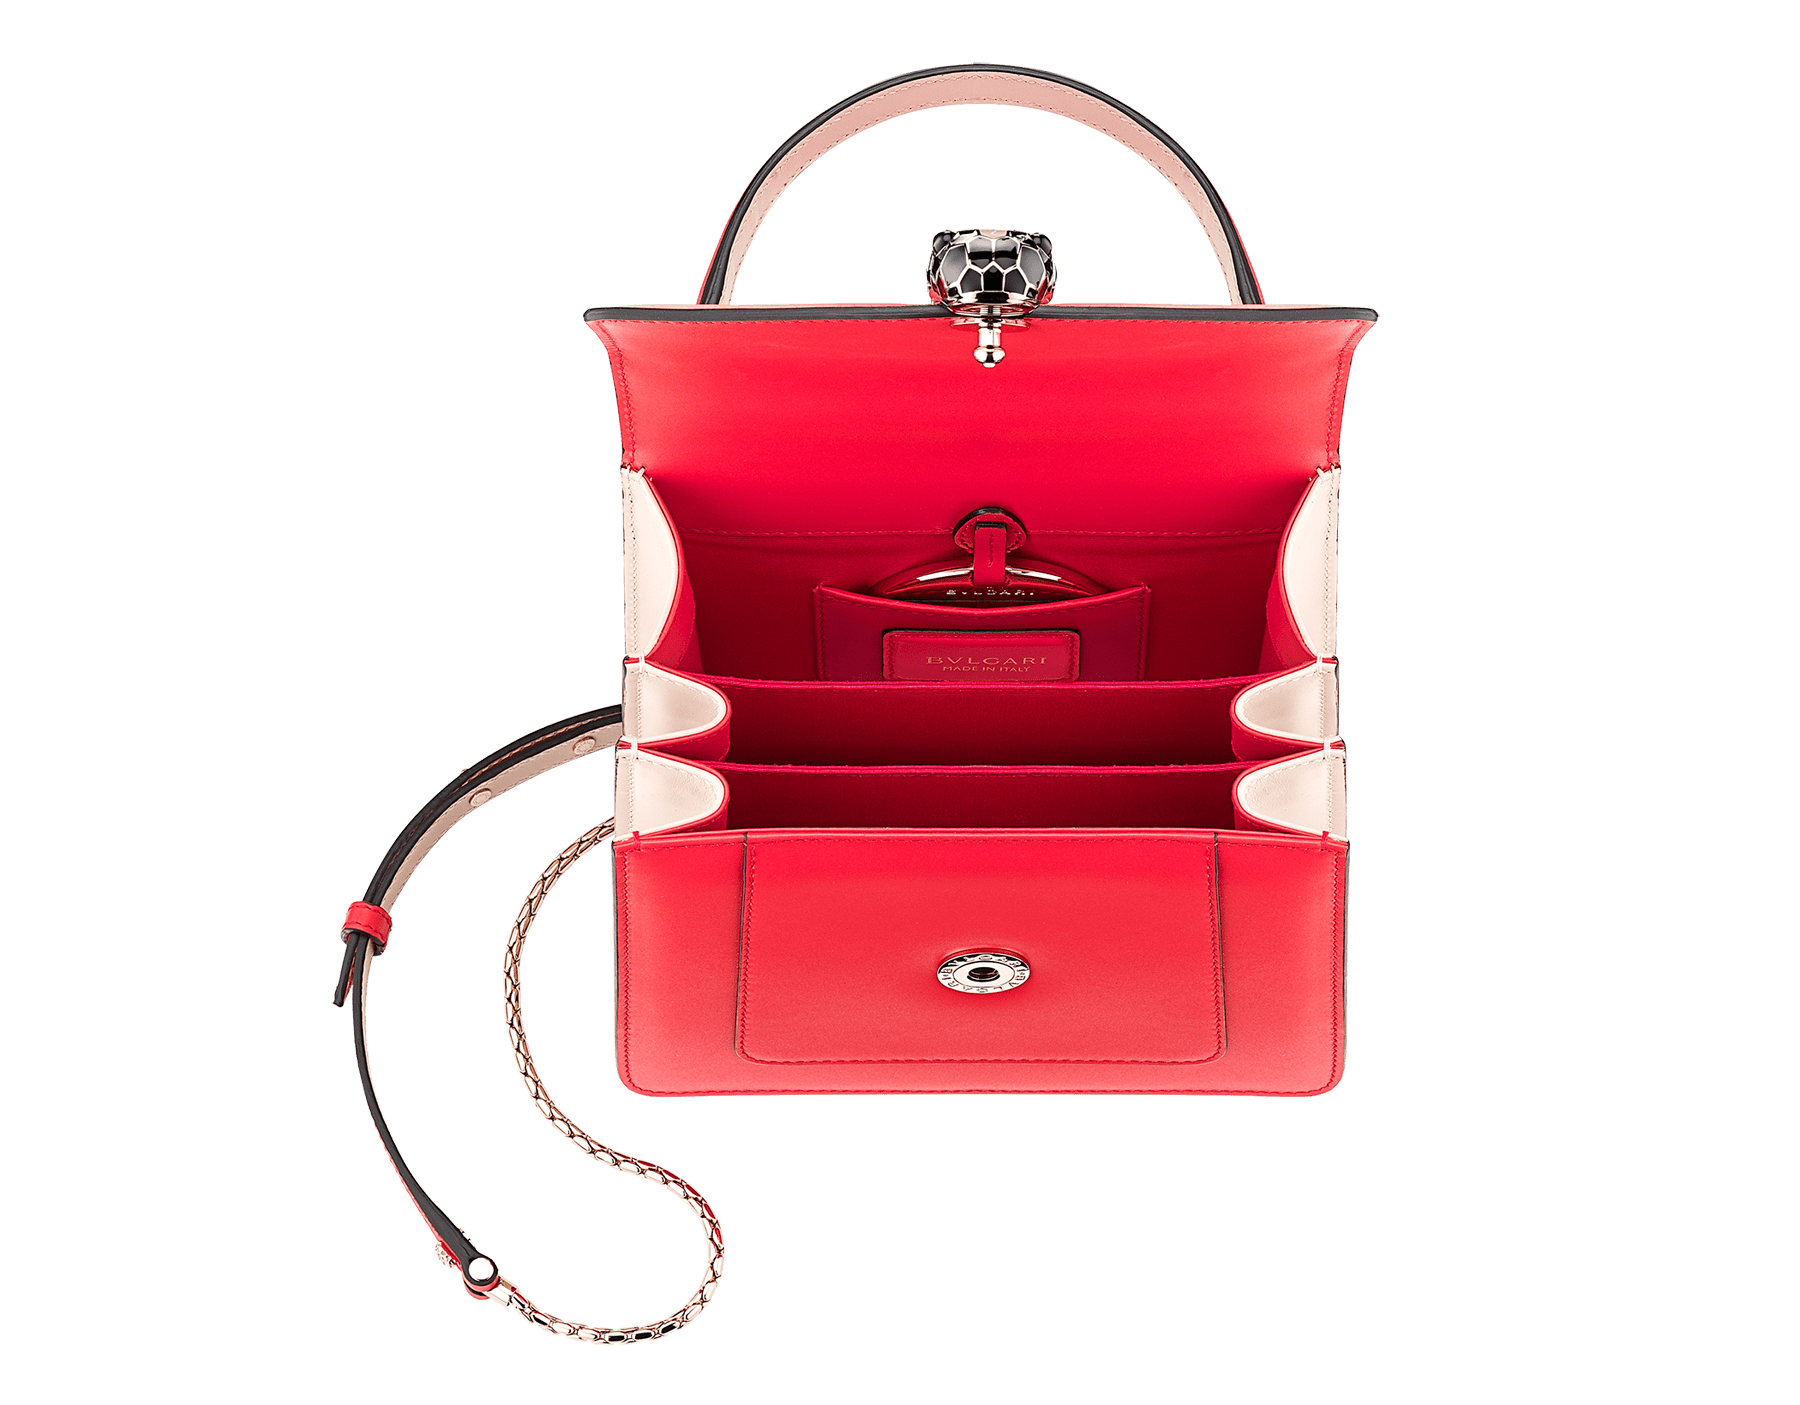 Serpenti Forever crossbody bag in sea star coral smooth calf leather body and milky opal calf leather sides. Snakehead closure in light gold plated brass decorated with milky opal and black enamel, and black onyx eyes. 287961 image 4